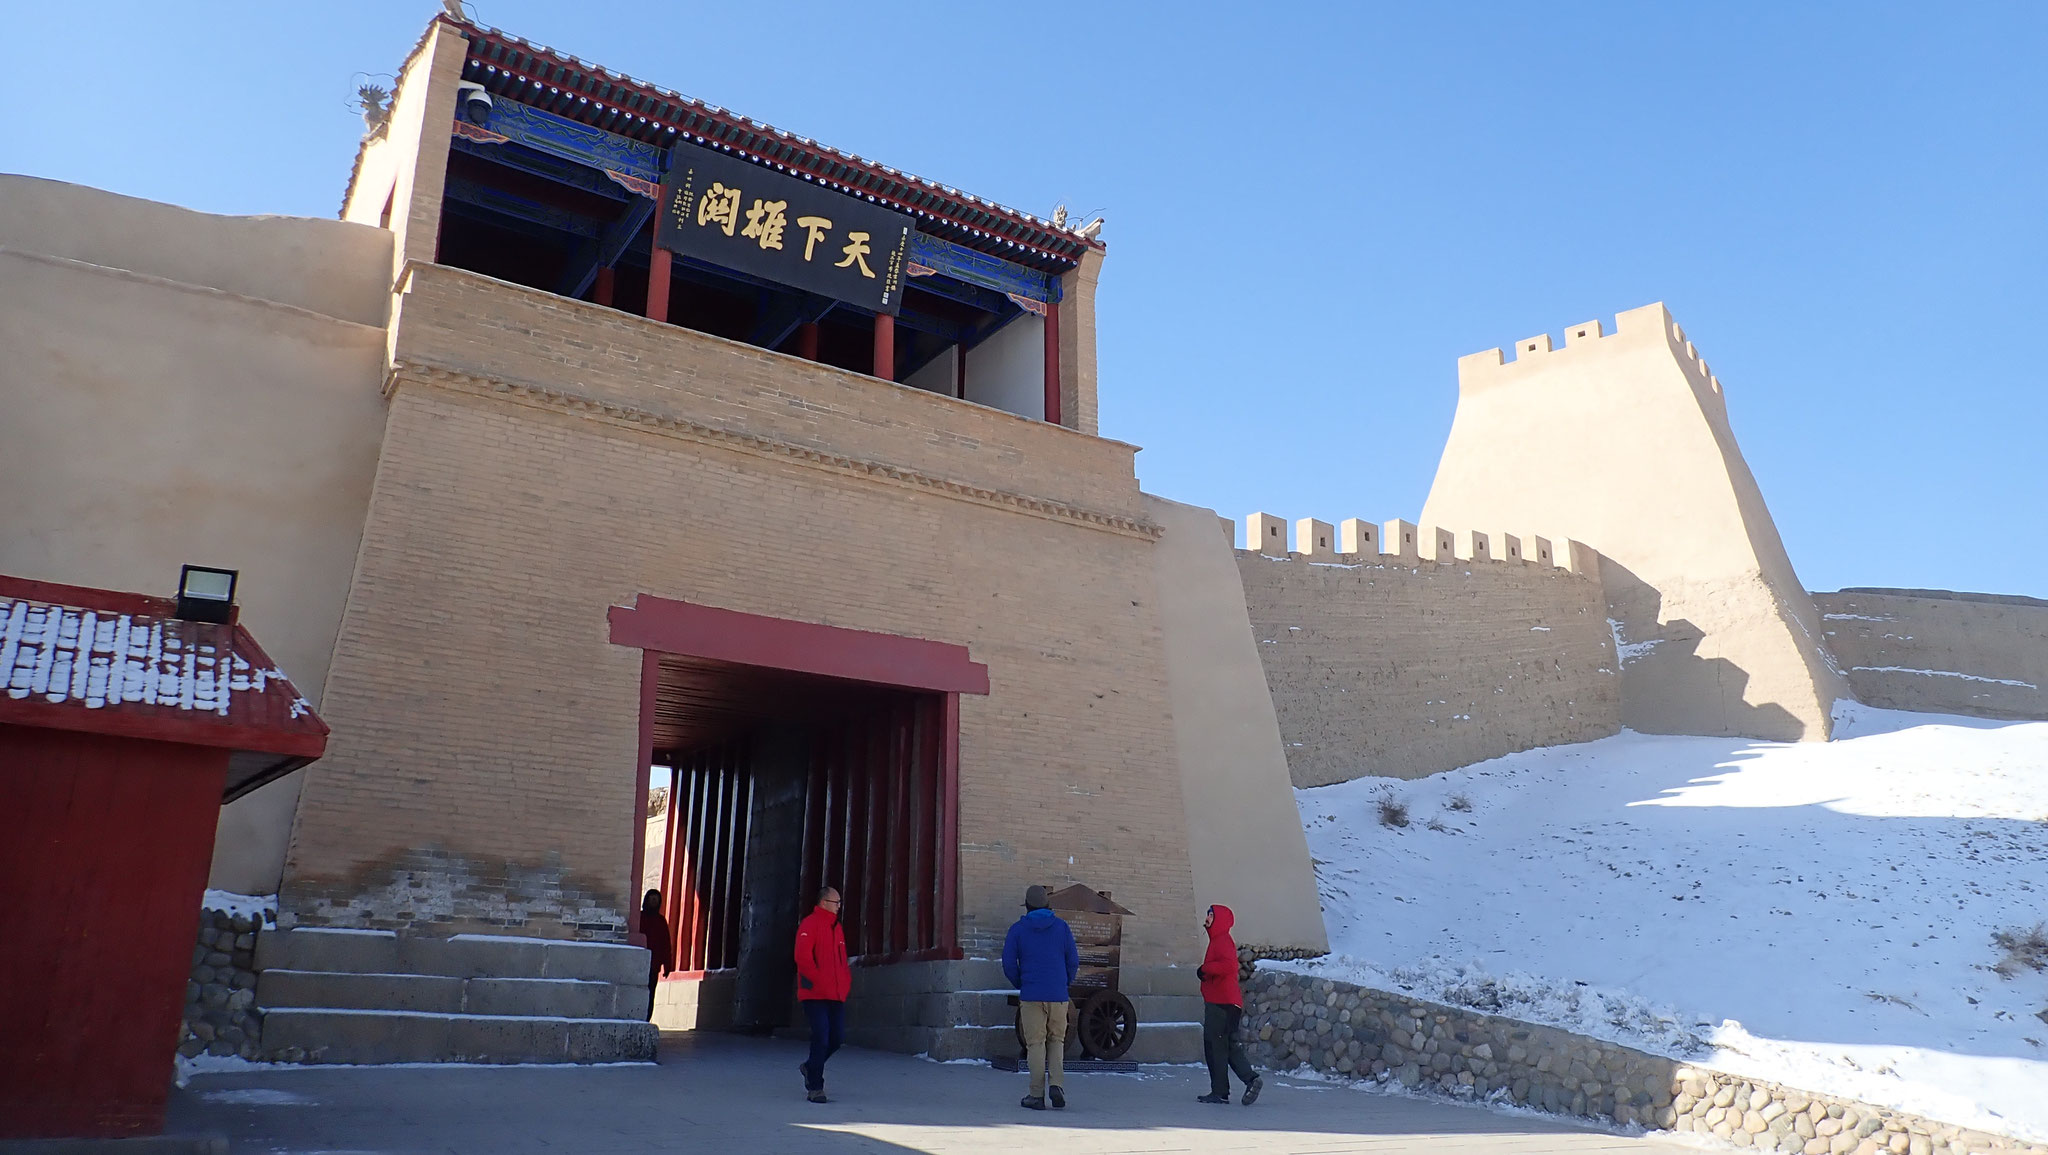 Guan Cheng 关城 -- the fort at the end of the Great Wall of China